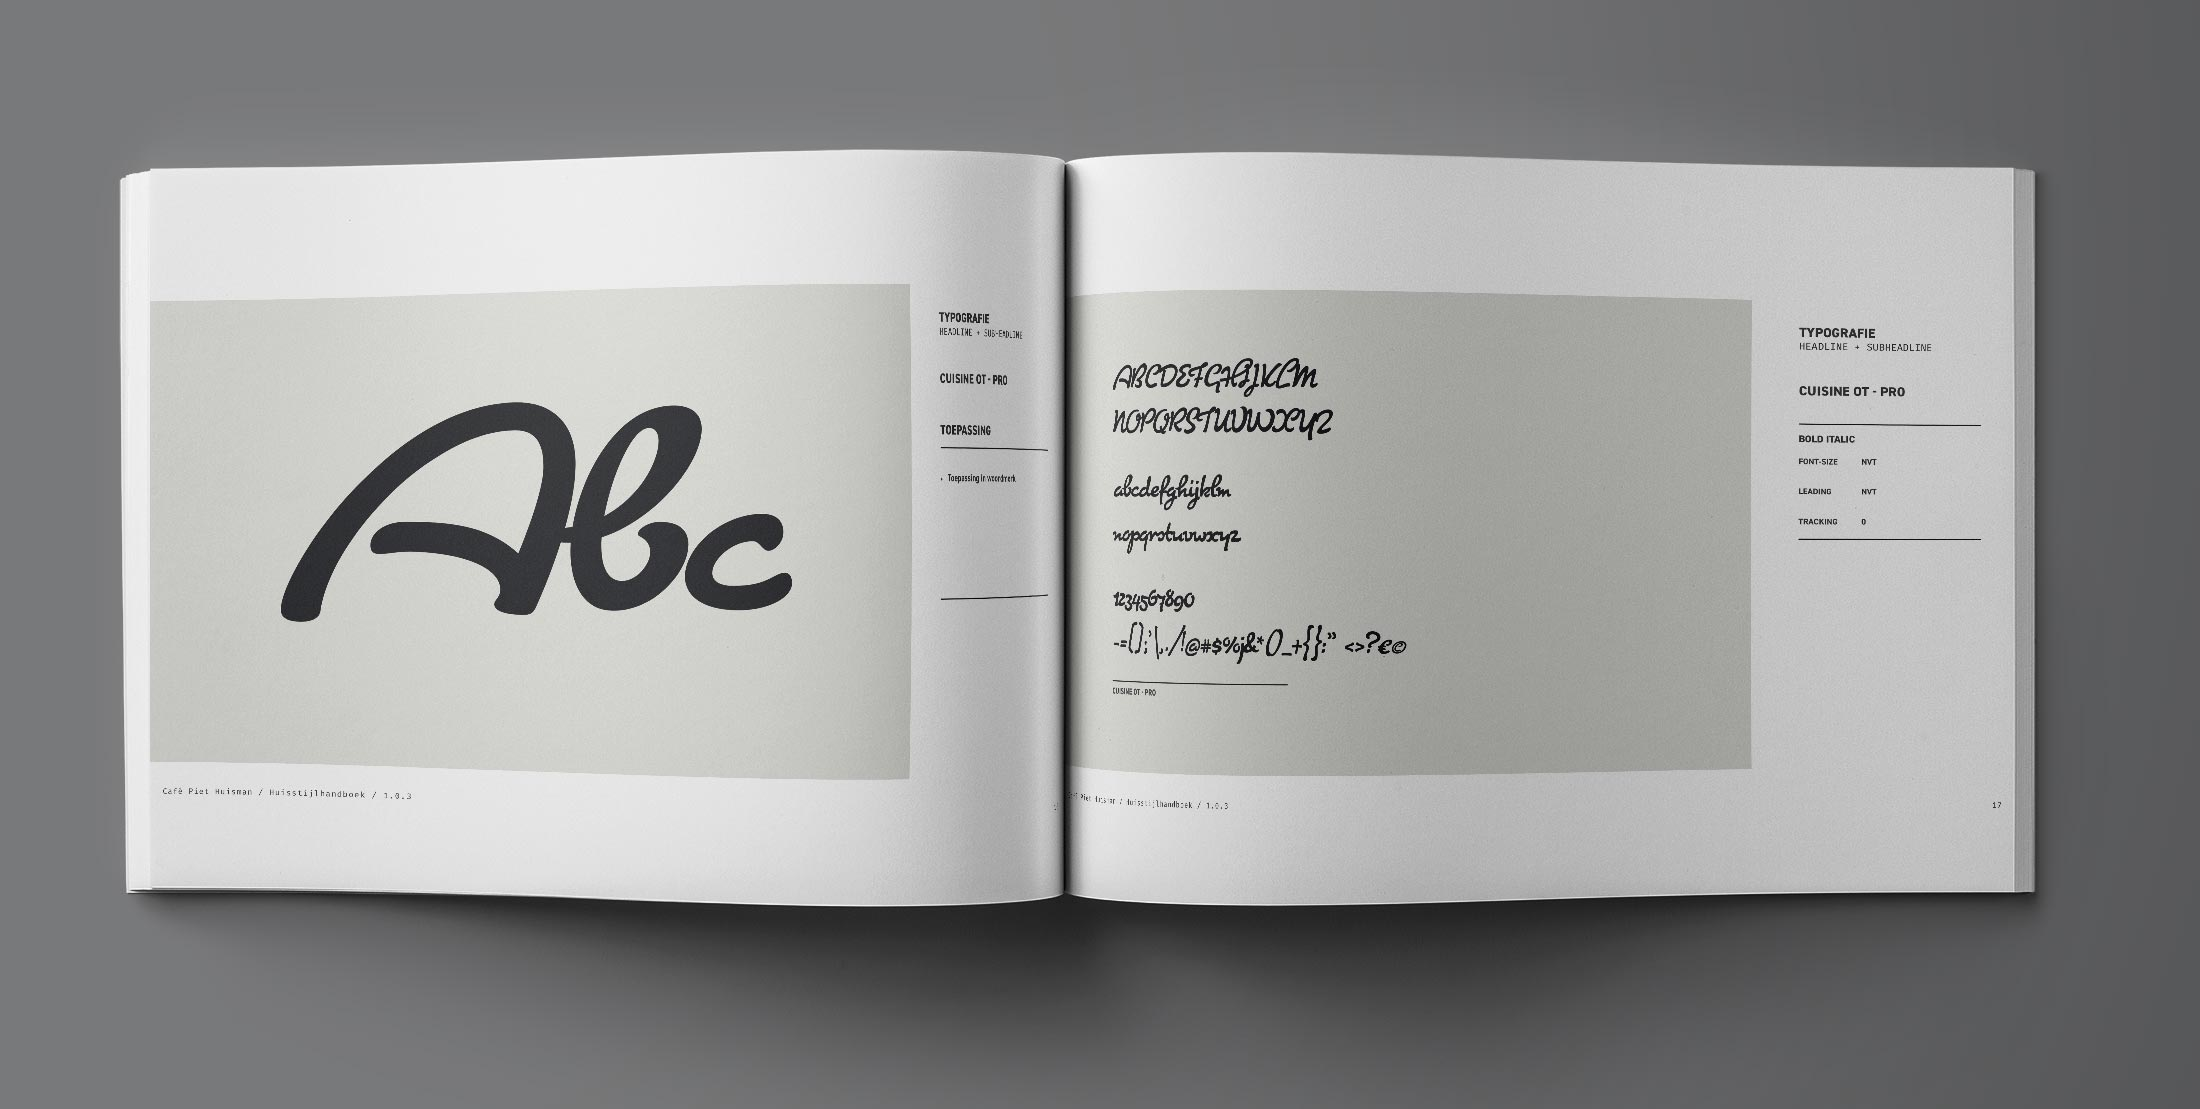 As you were, Nijmegen - Huisstijlhandboek, typografie